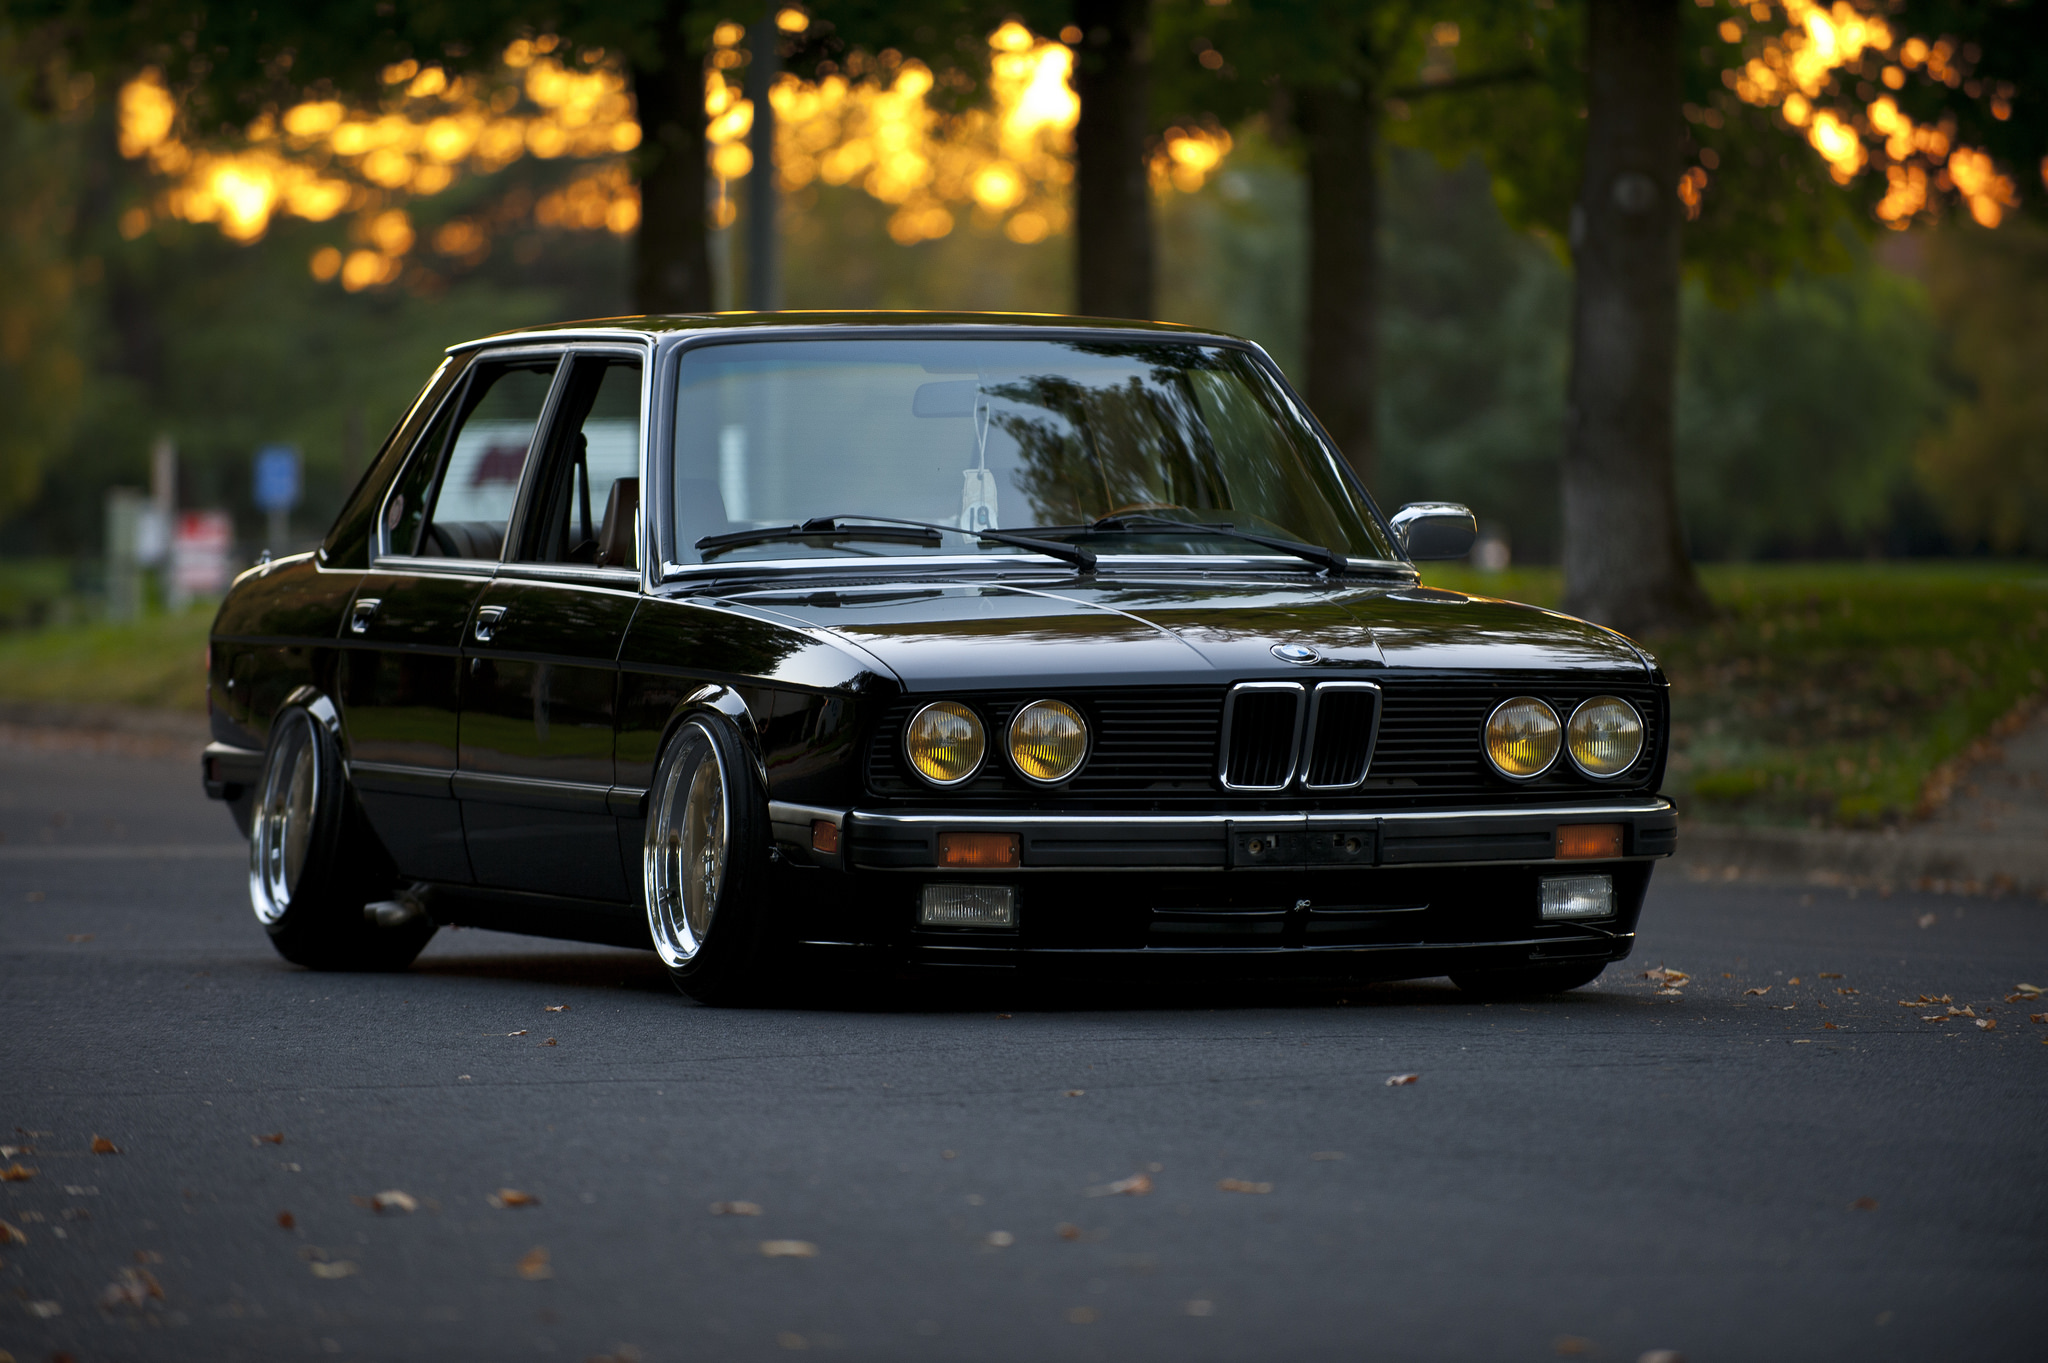 Beautiful Bmw E28 Stancenation Form Gt Function